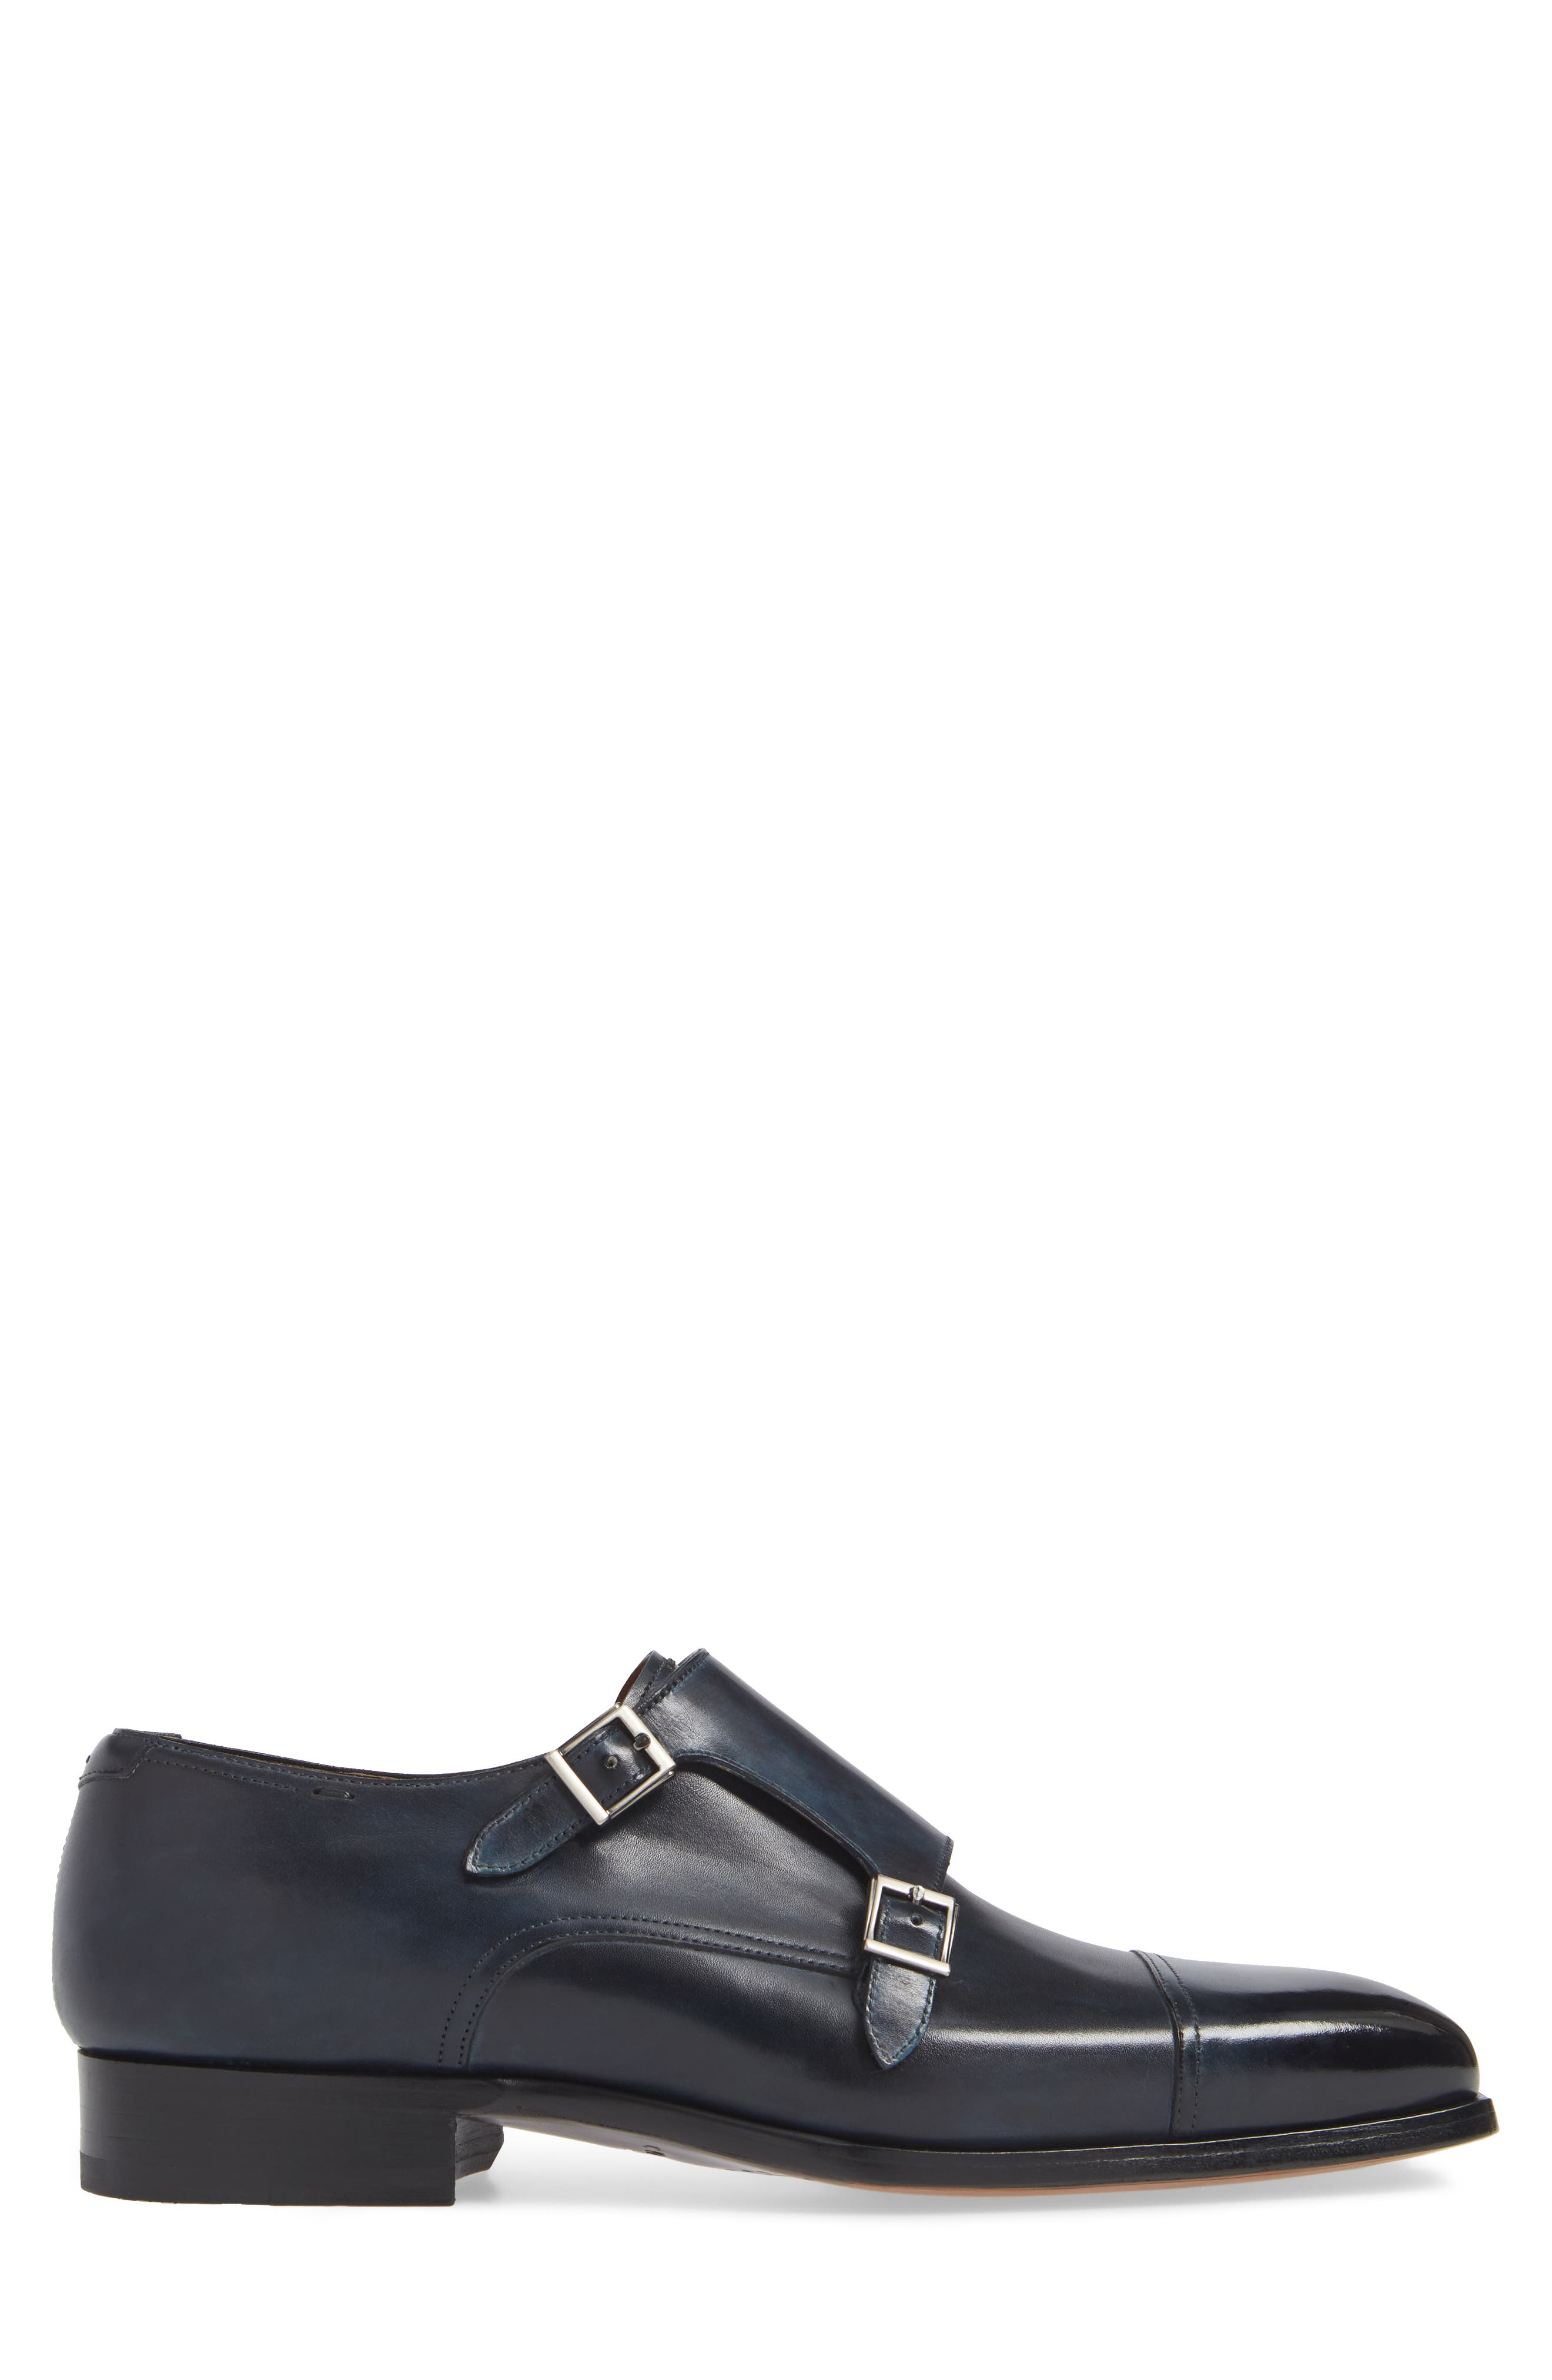 MAGNANNI,                             Wooster Double Monk Strap Shoe,                             Alternate thumbnail 3, color,                             NAVY LEATHER